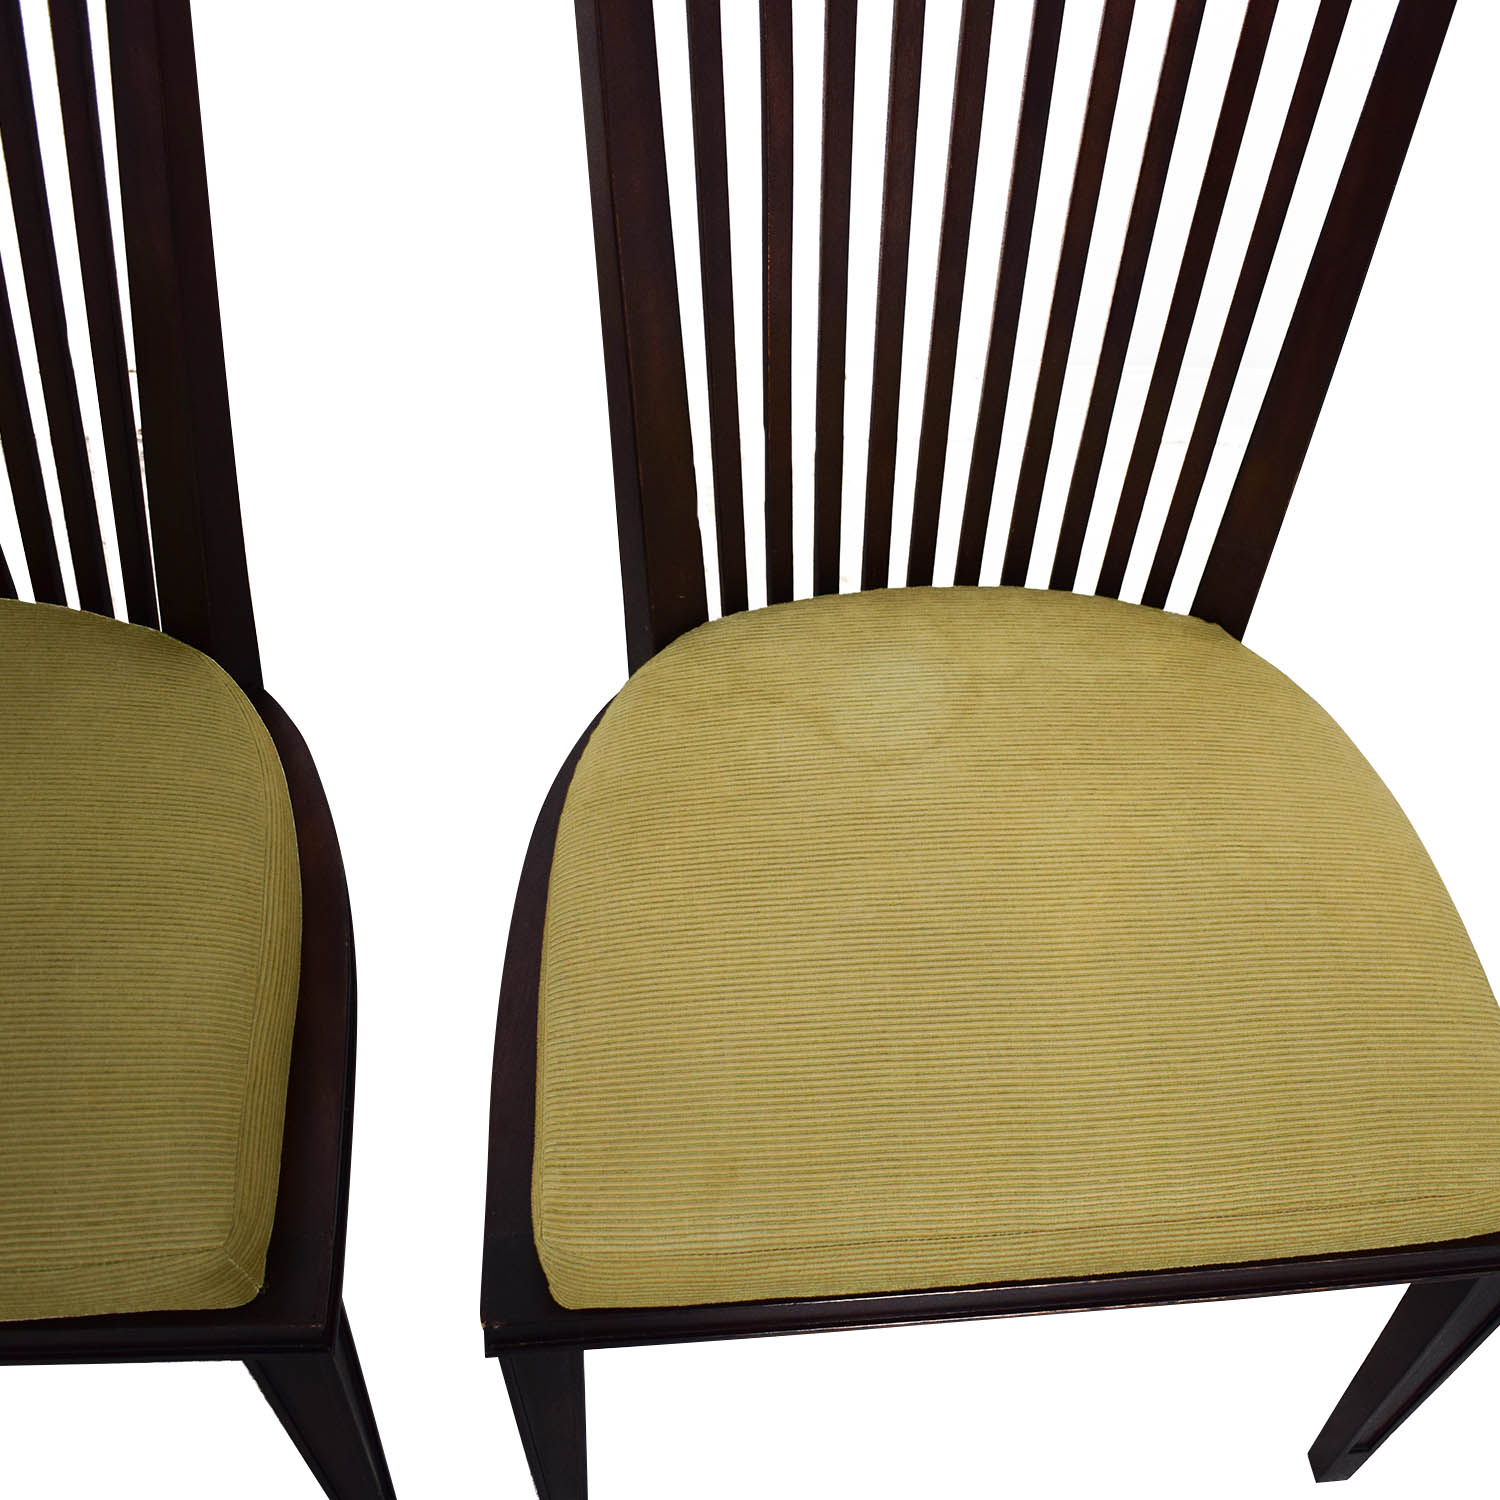 Baker Furniture Barbara Barry by Baker Dining Room Chairs dimensions